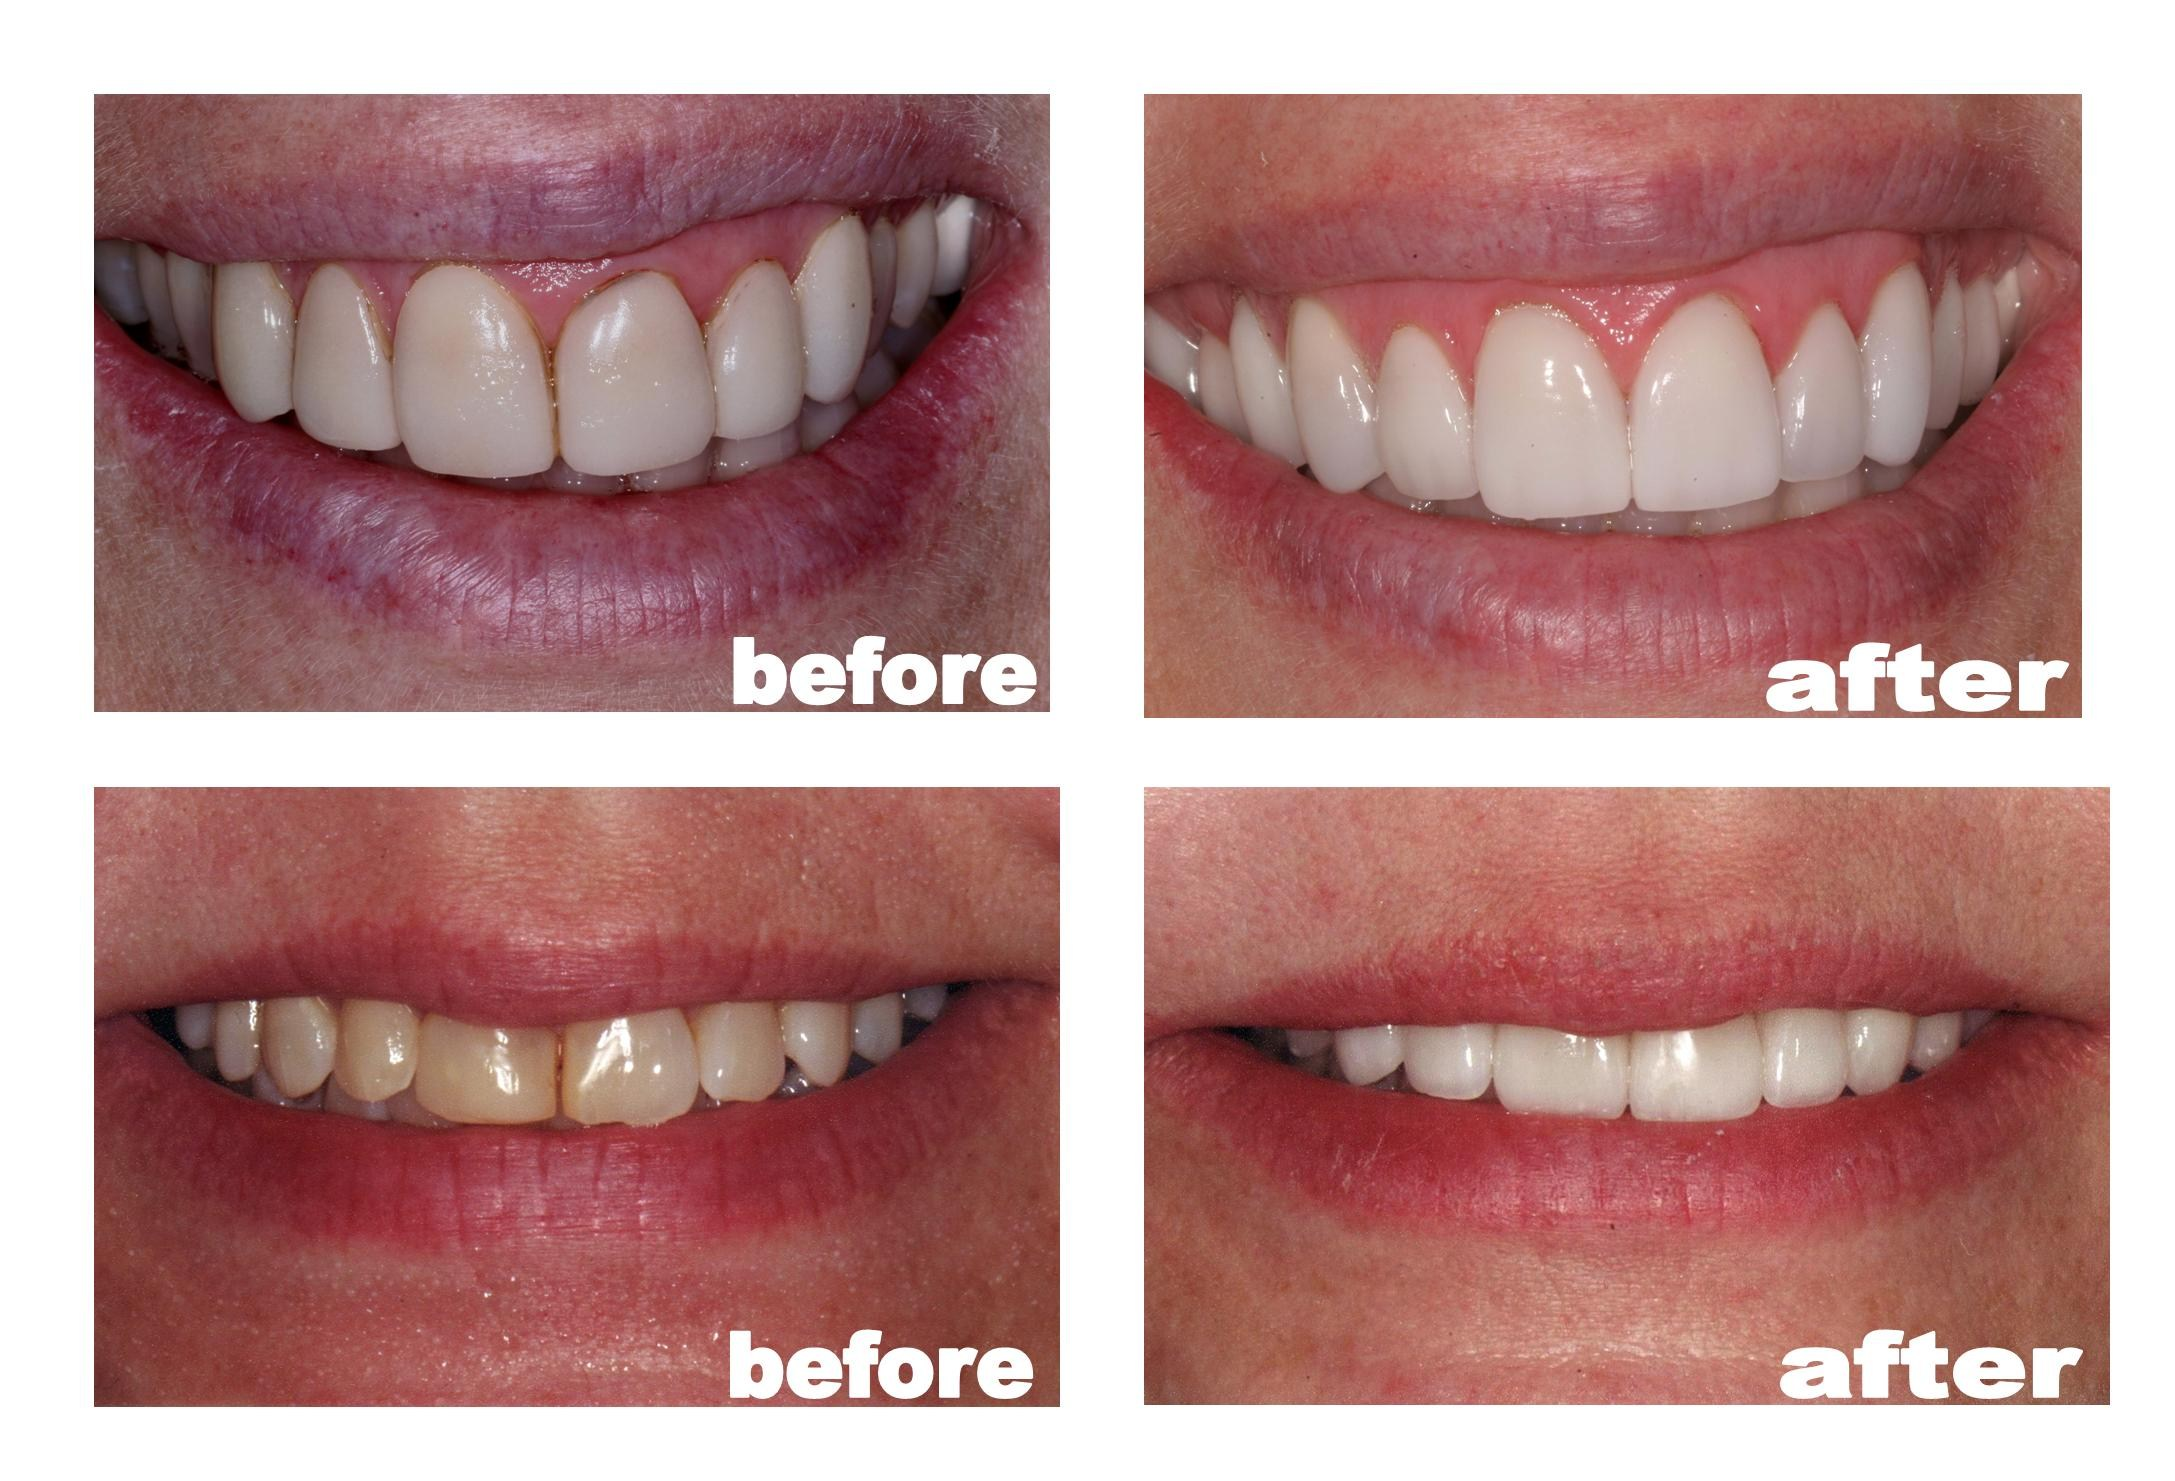 Total Care Dental Madison Wi Reviews